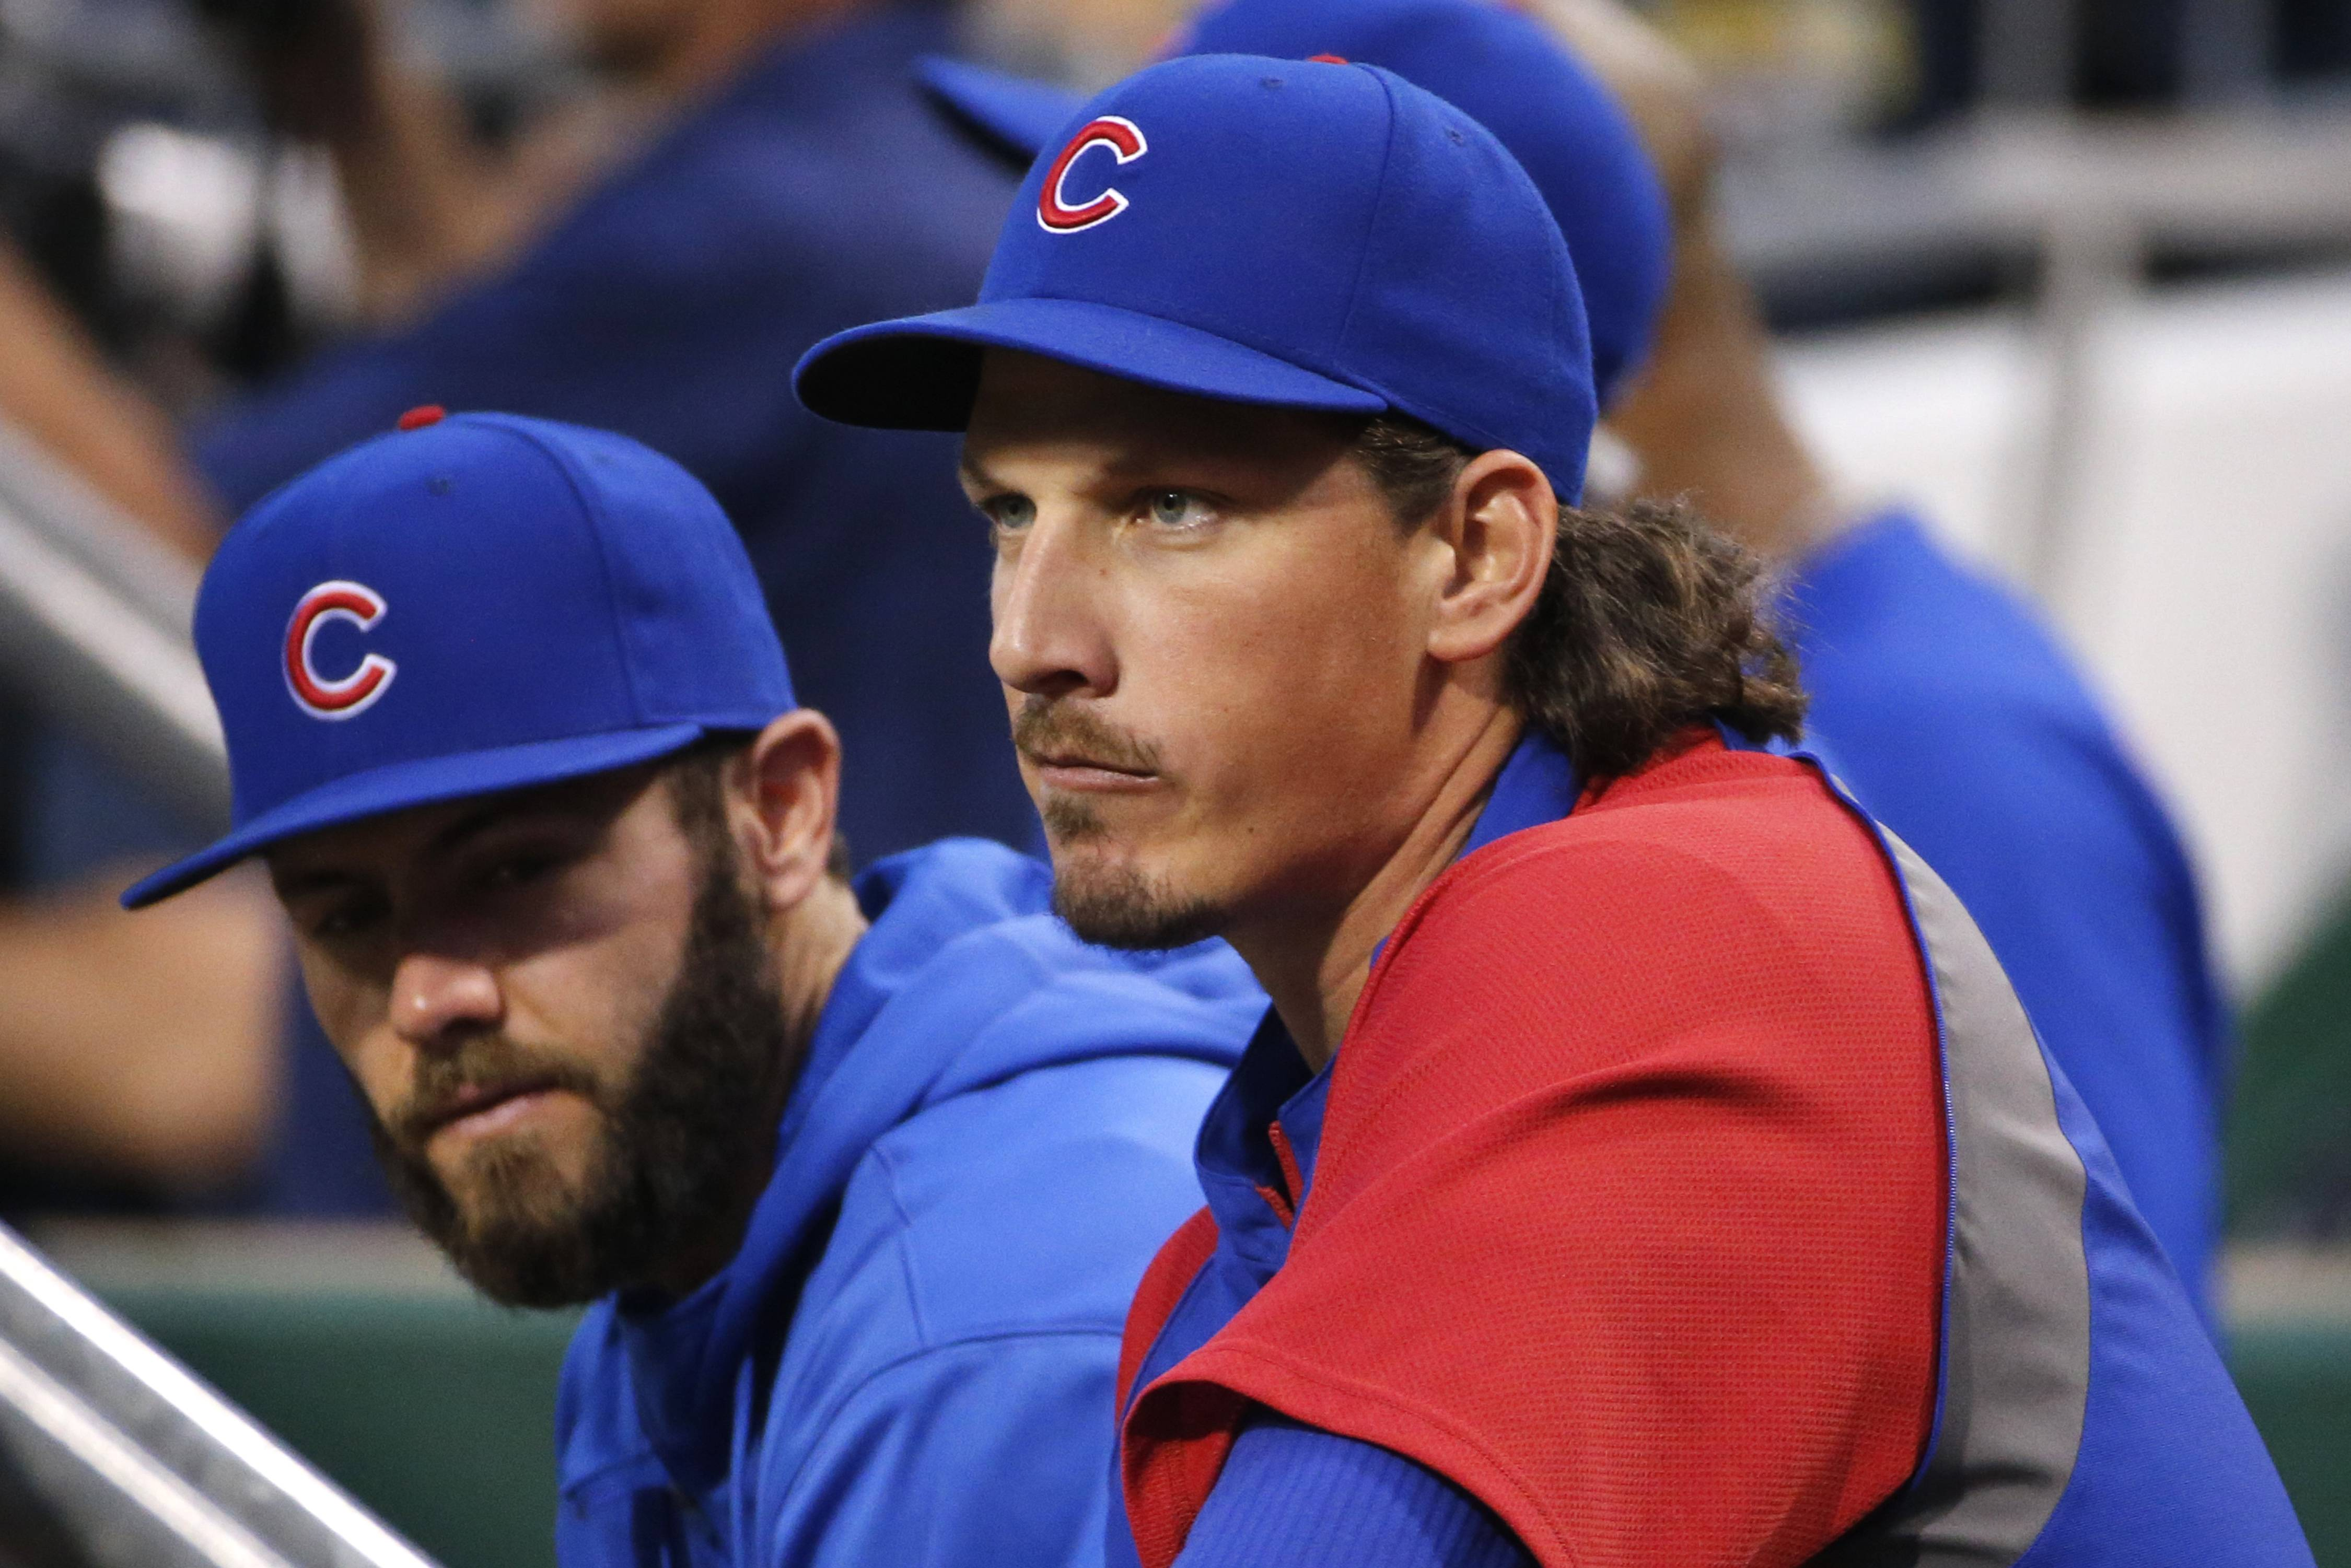 Cubs, Samardzija both making smart play